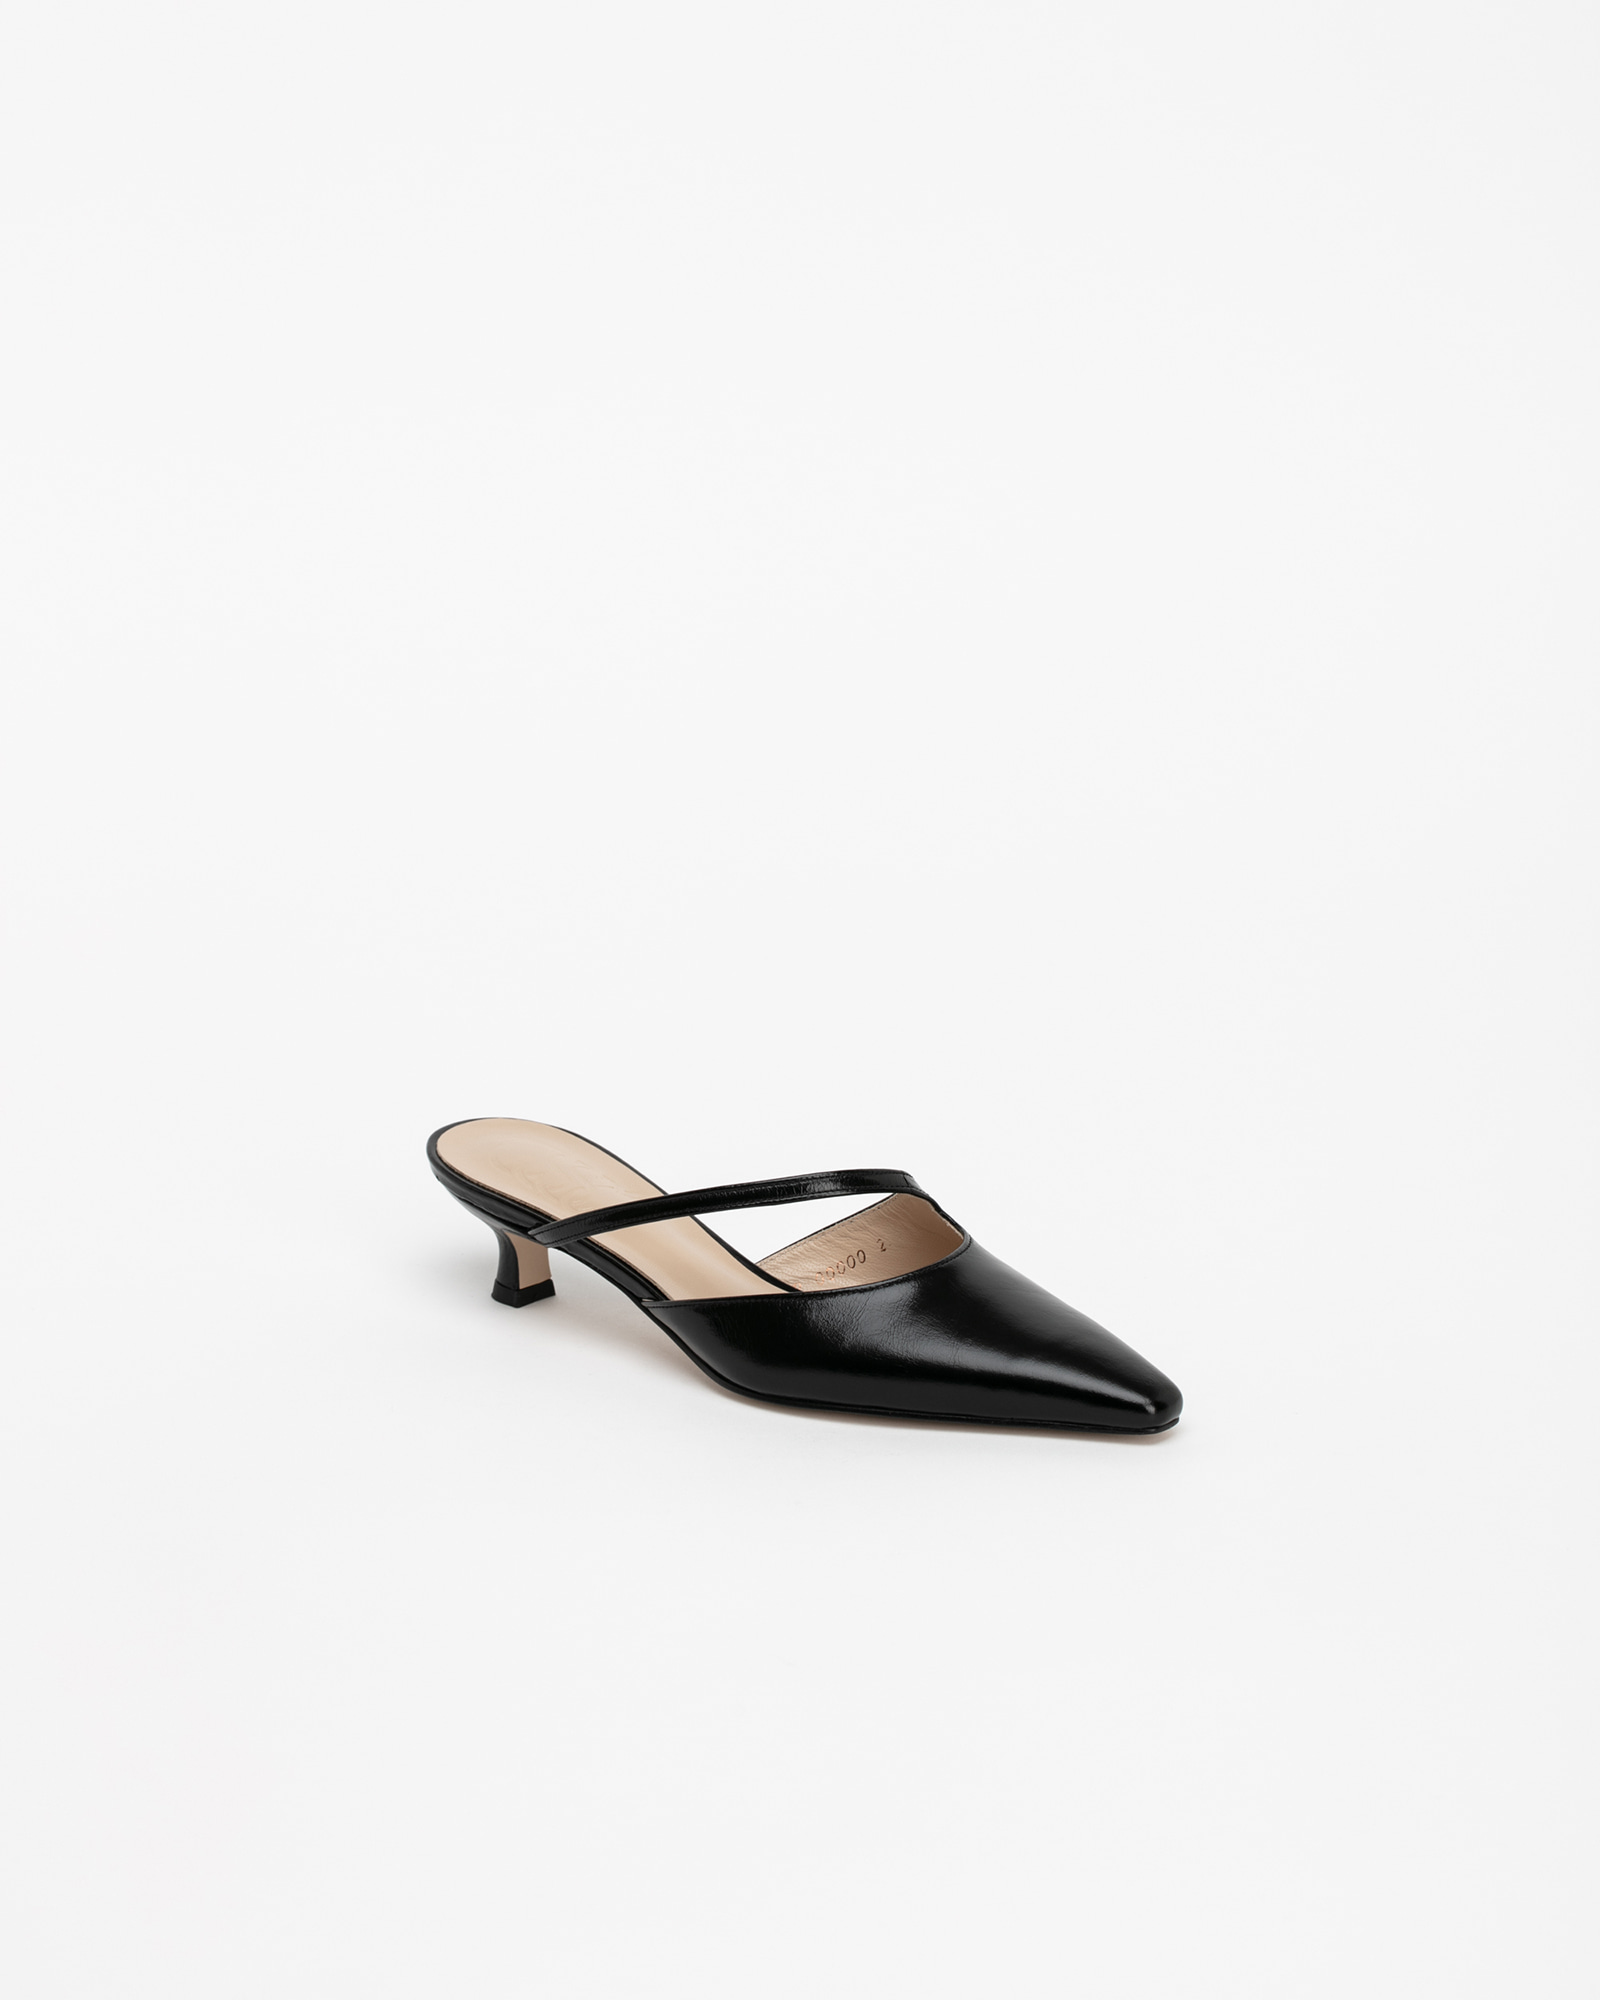 Serenade Mules in Textured Black